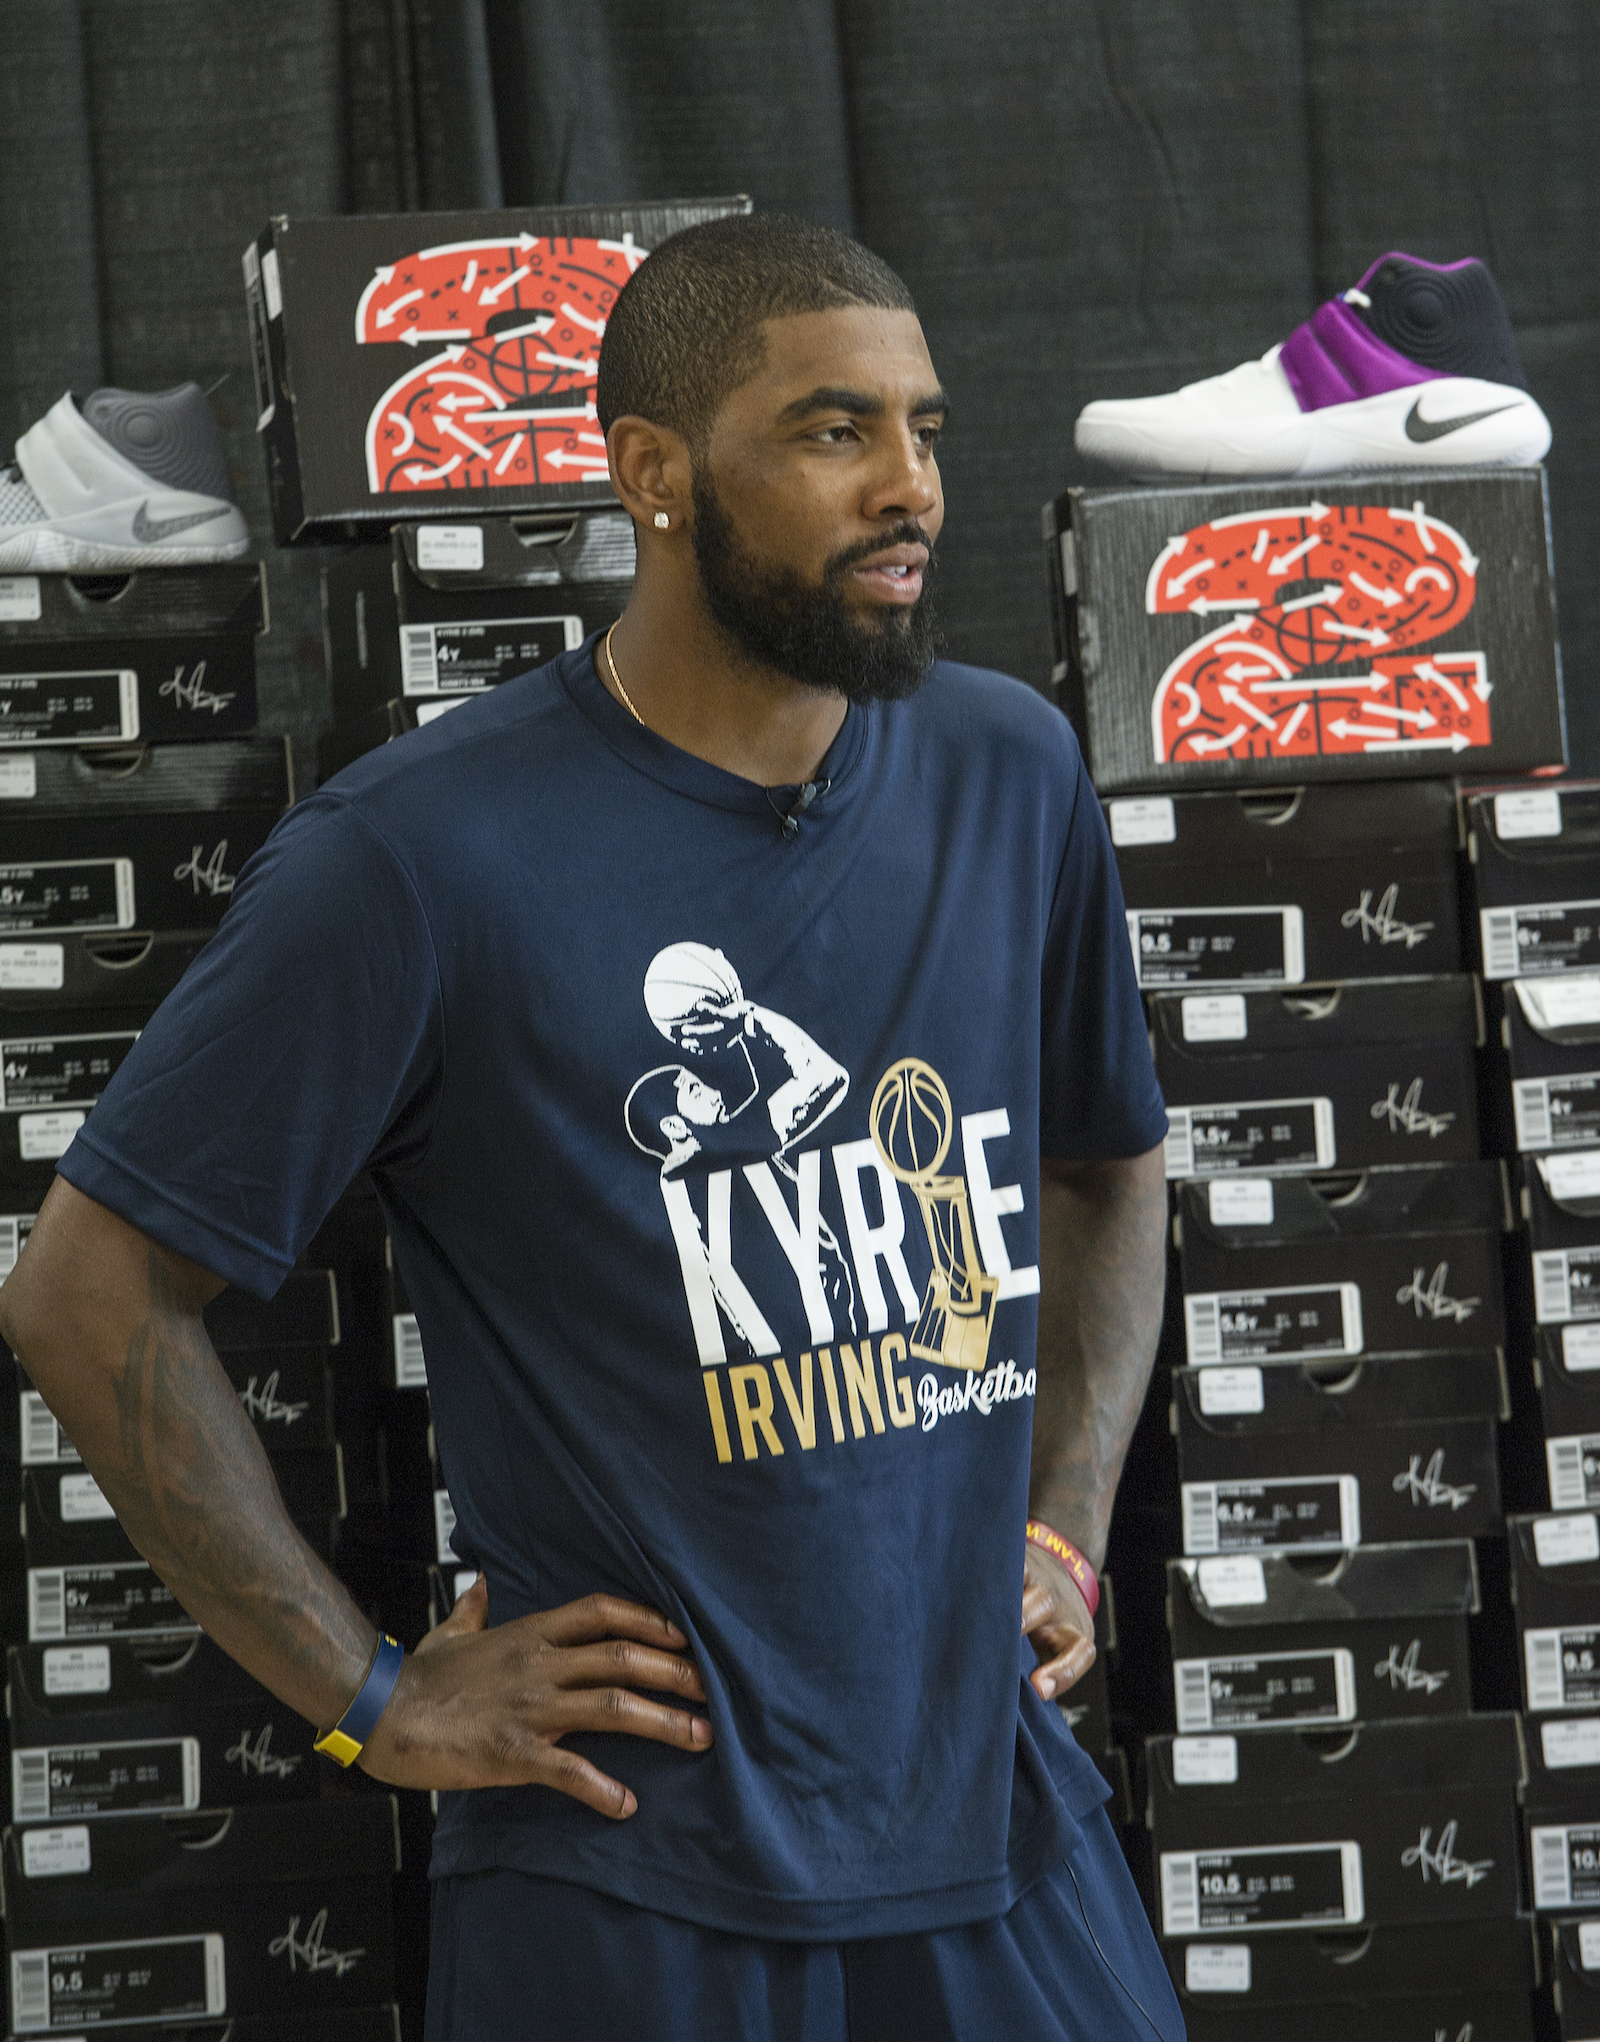 Cleveland Cavaliers star Kyrie Irving, in partnership with Kids Foot Locker, donated 190 pairs of sneakers to Boys & Girls Clubs of Cleveland, Saturday, July 9, 2016, in Independence, Ohio. The donation matched Irving's 190 points scored during the NBA championship series.  (Phil Long/AP Images for Kids Foot Locker)